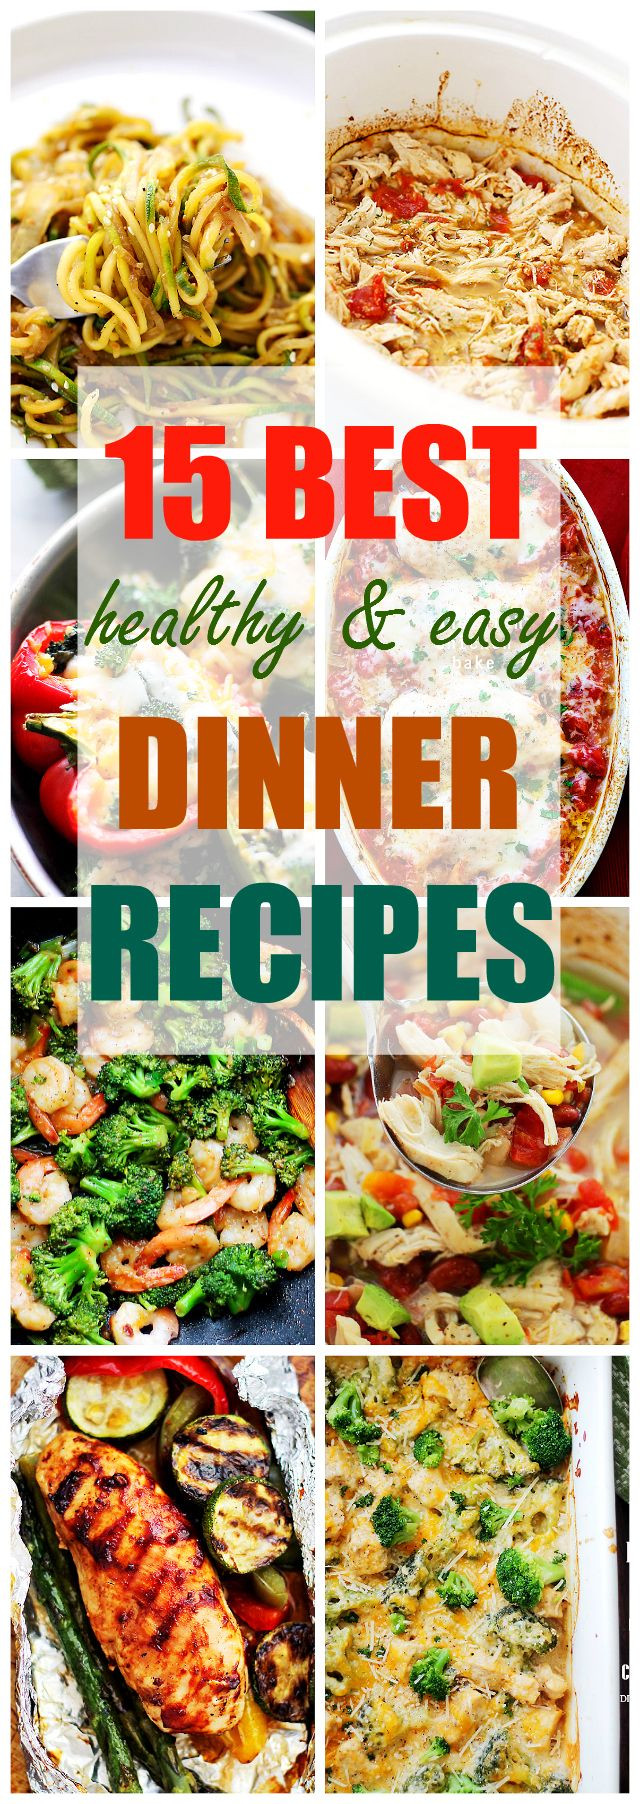 Super Healthy Dinners  15 Best Healthy and Easy Dinner Recipes